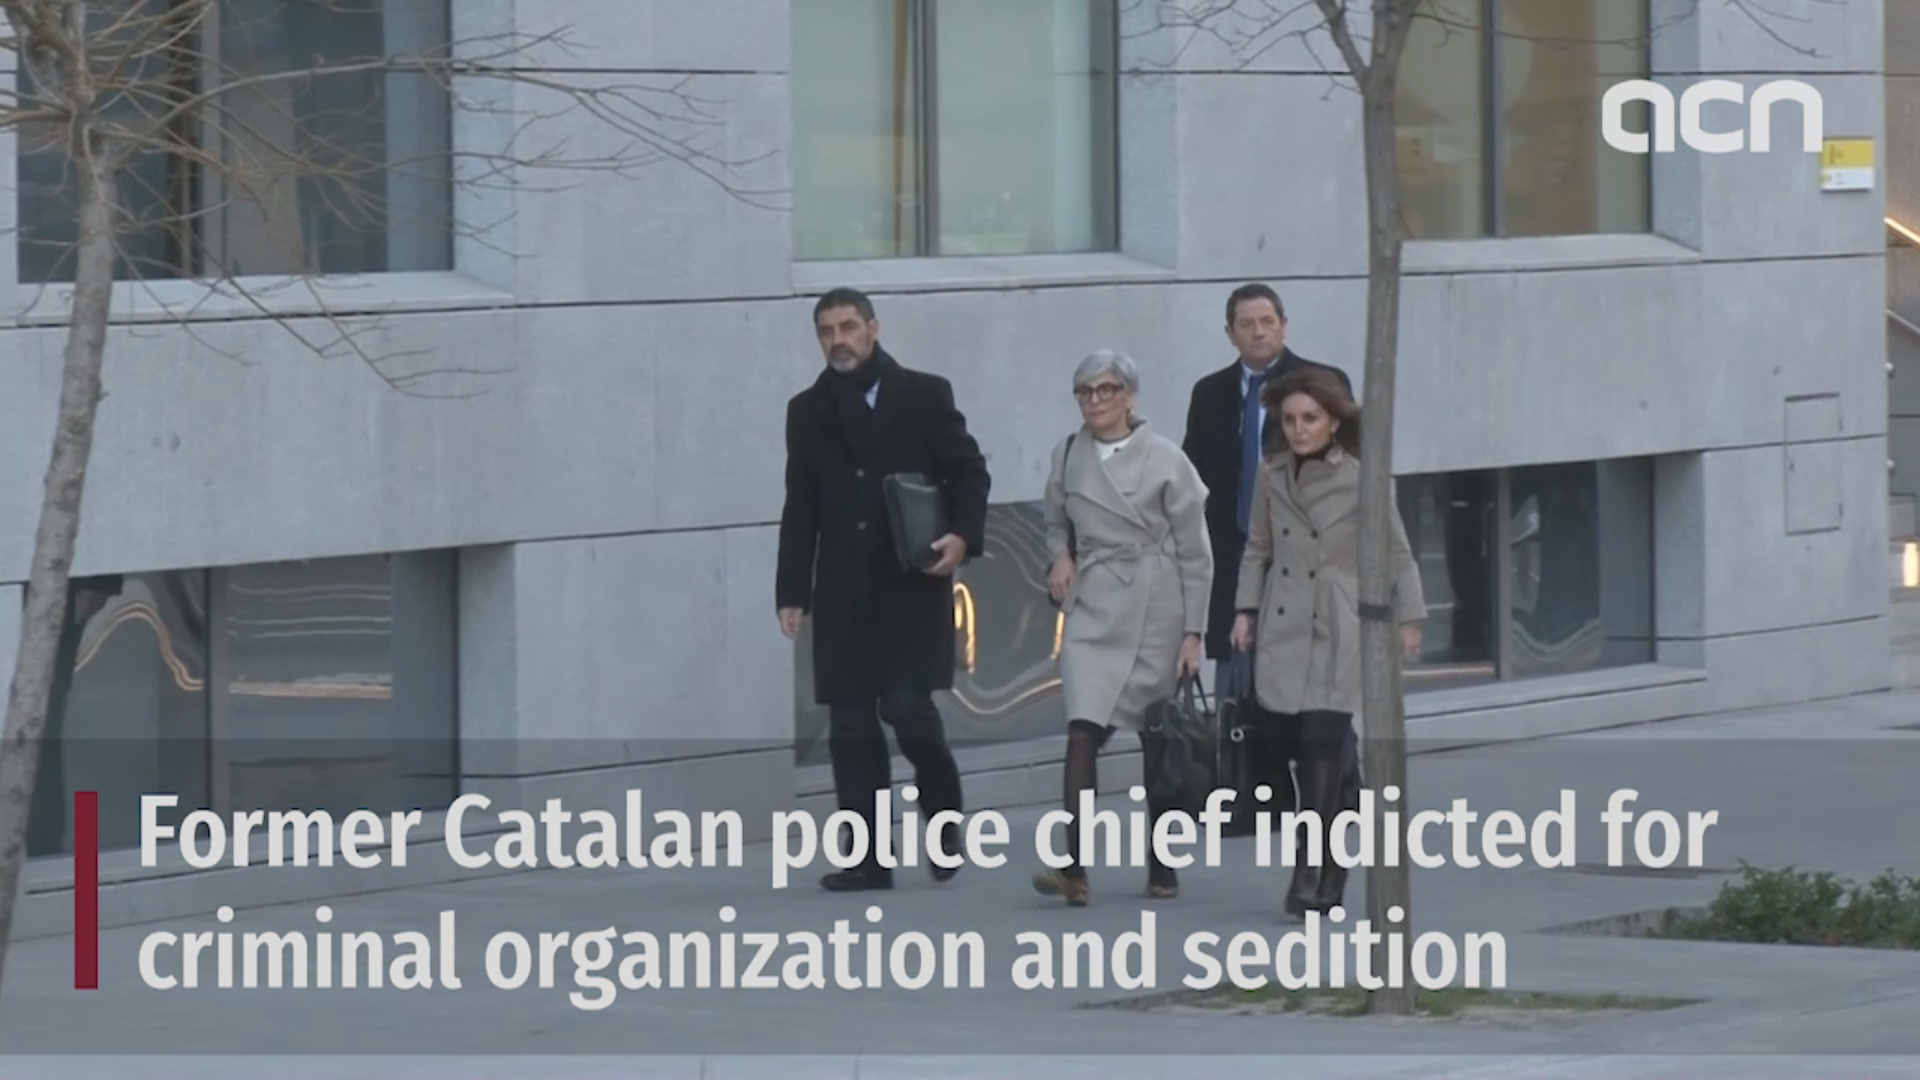 Former Catalan police chief indicted for criminal organization and sedition